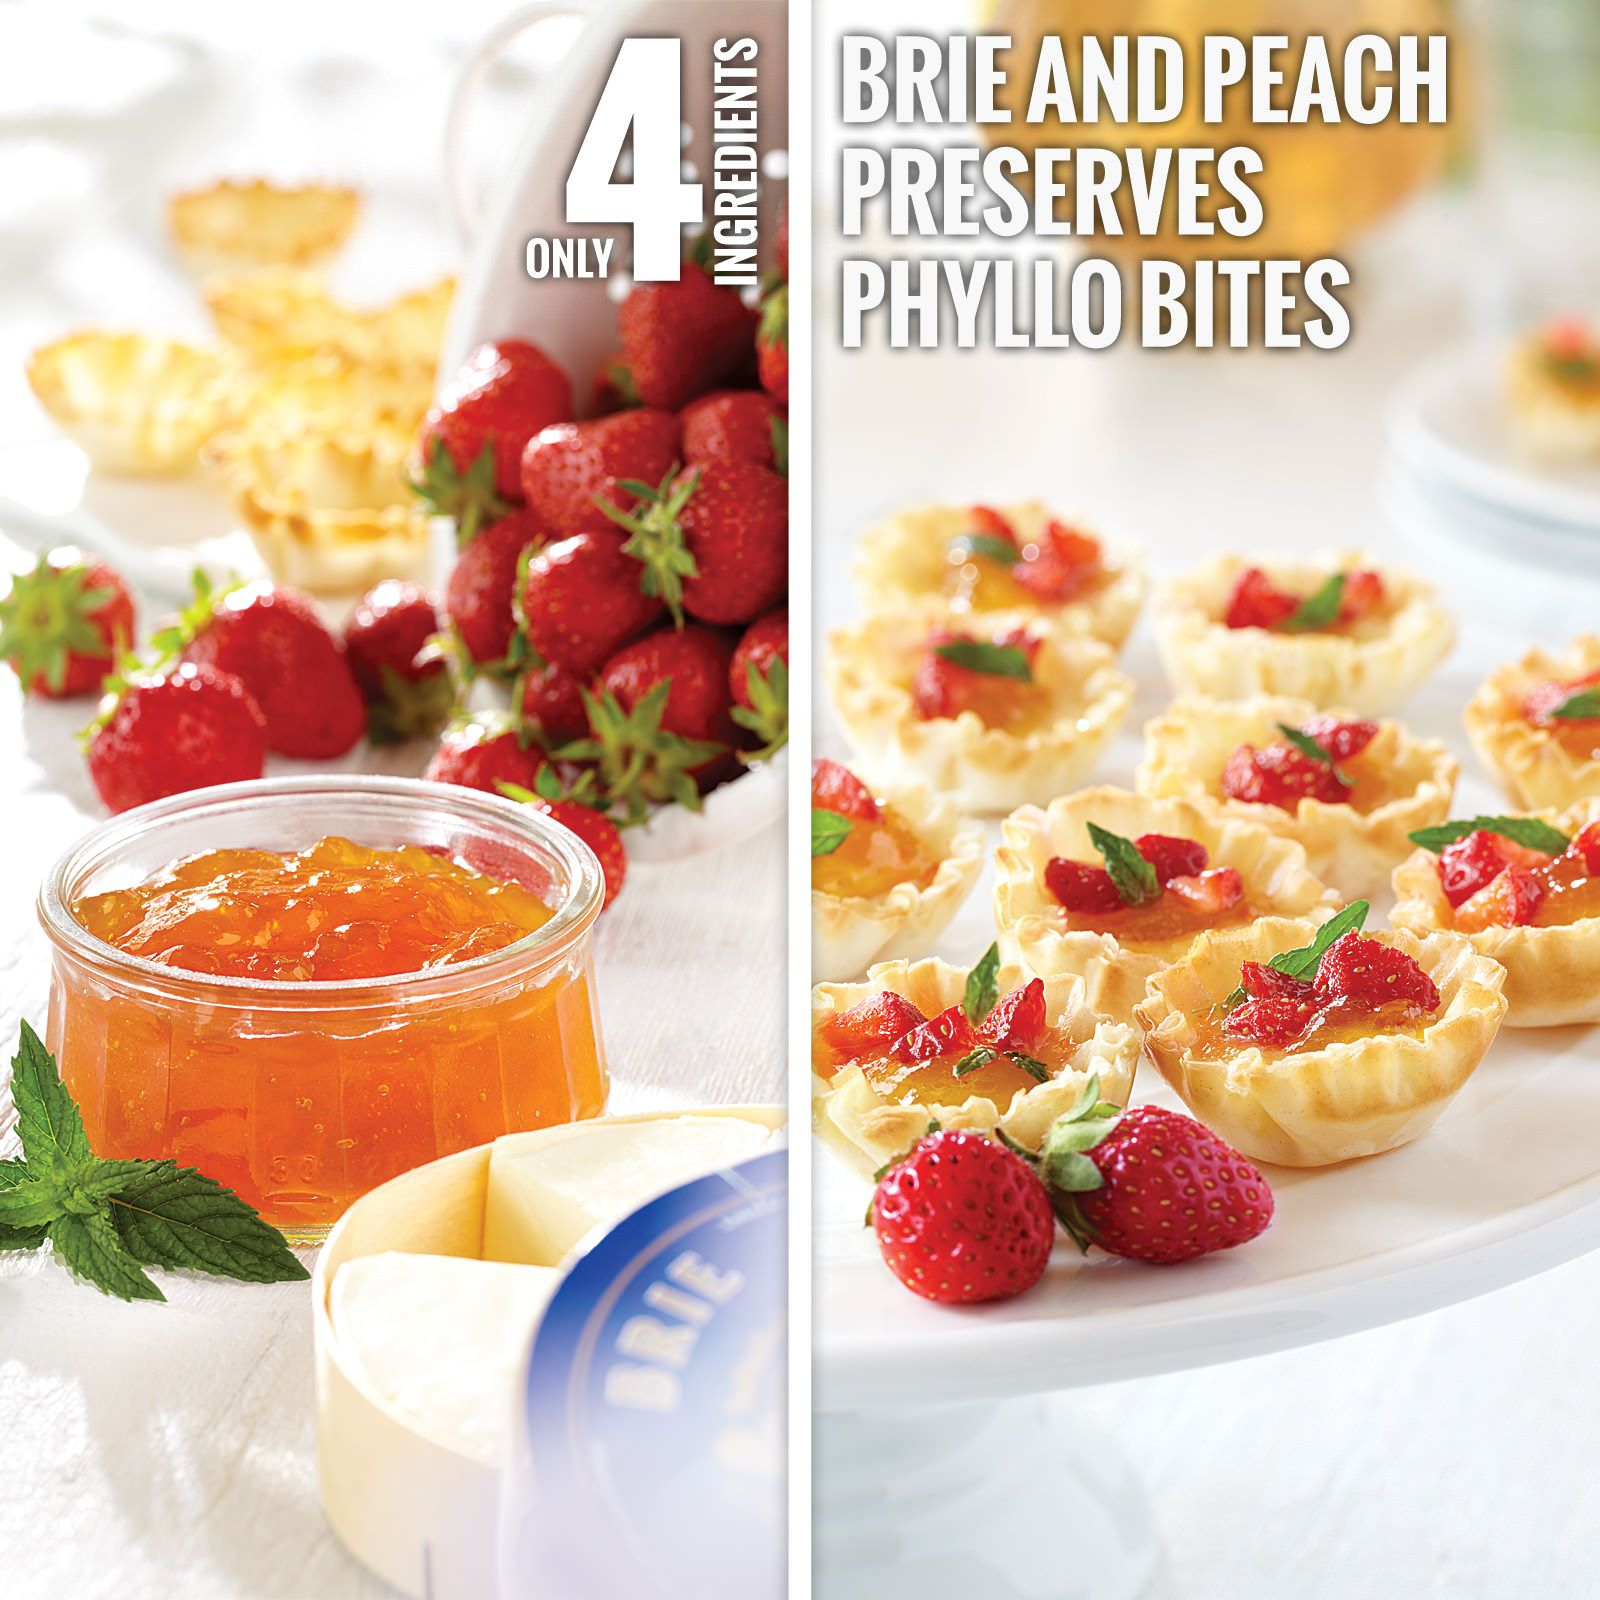 Brie and Peach Preserves Phyllo Bites from Smucker's